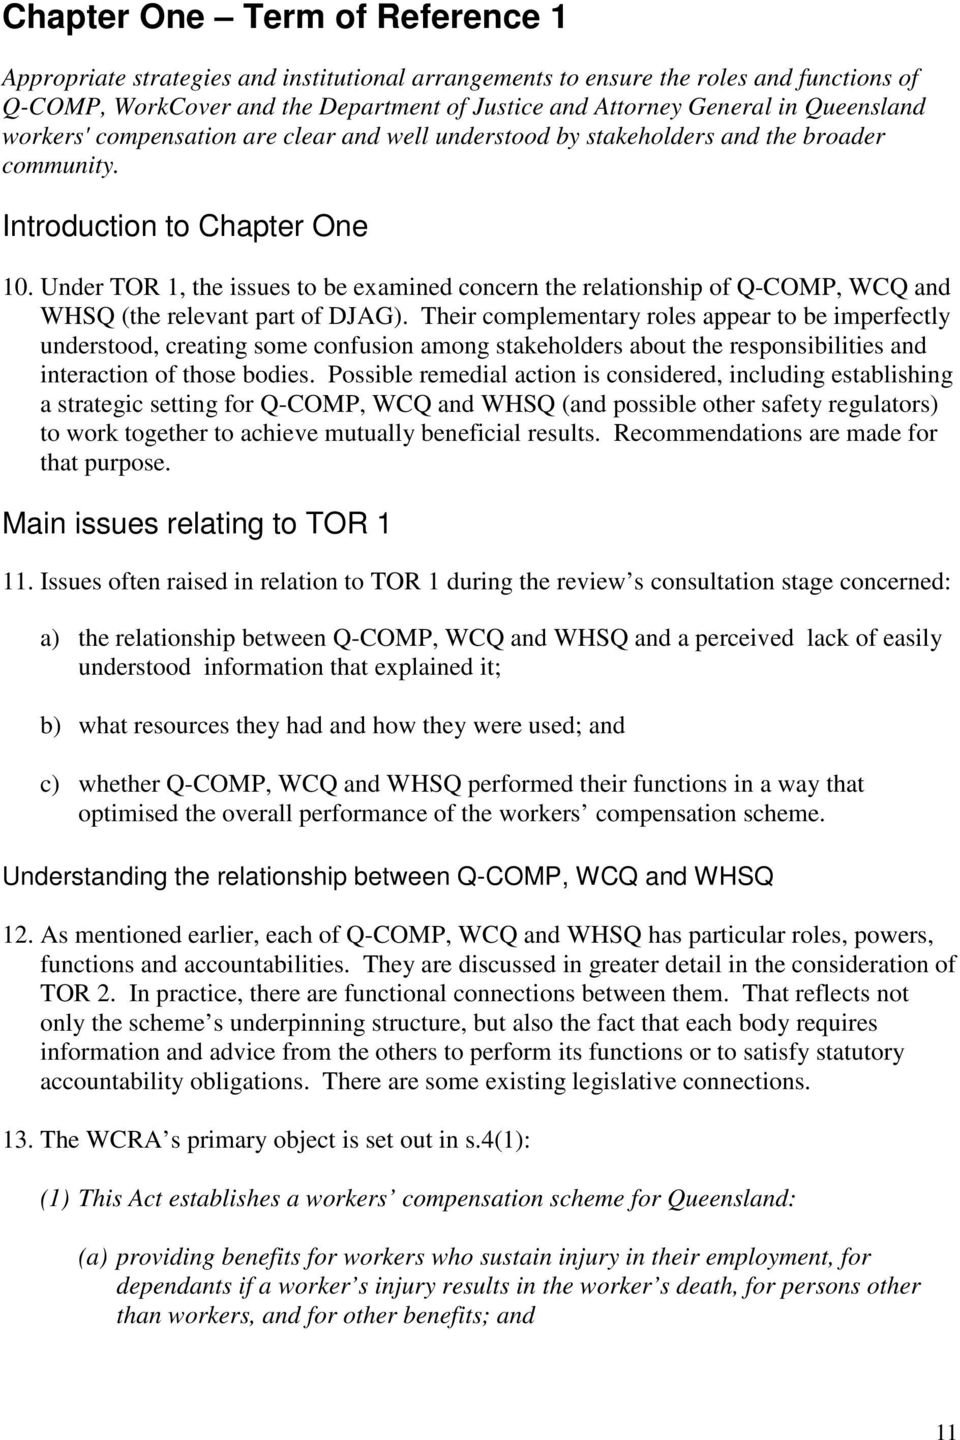 Under TOR 1, the issues to be examined concern the relationship of Q-COMP, WCQ and WHSQ (the relevant part of DJAG).